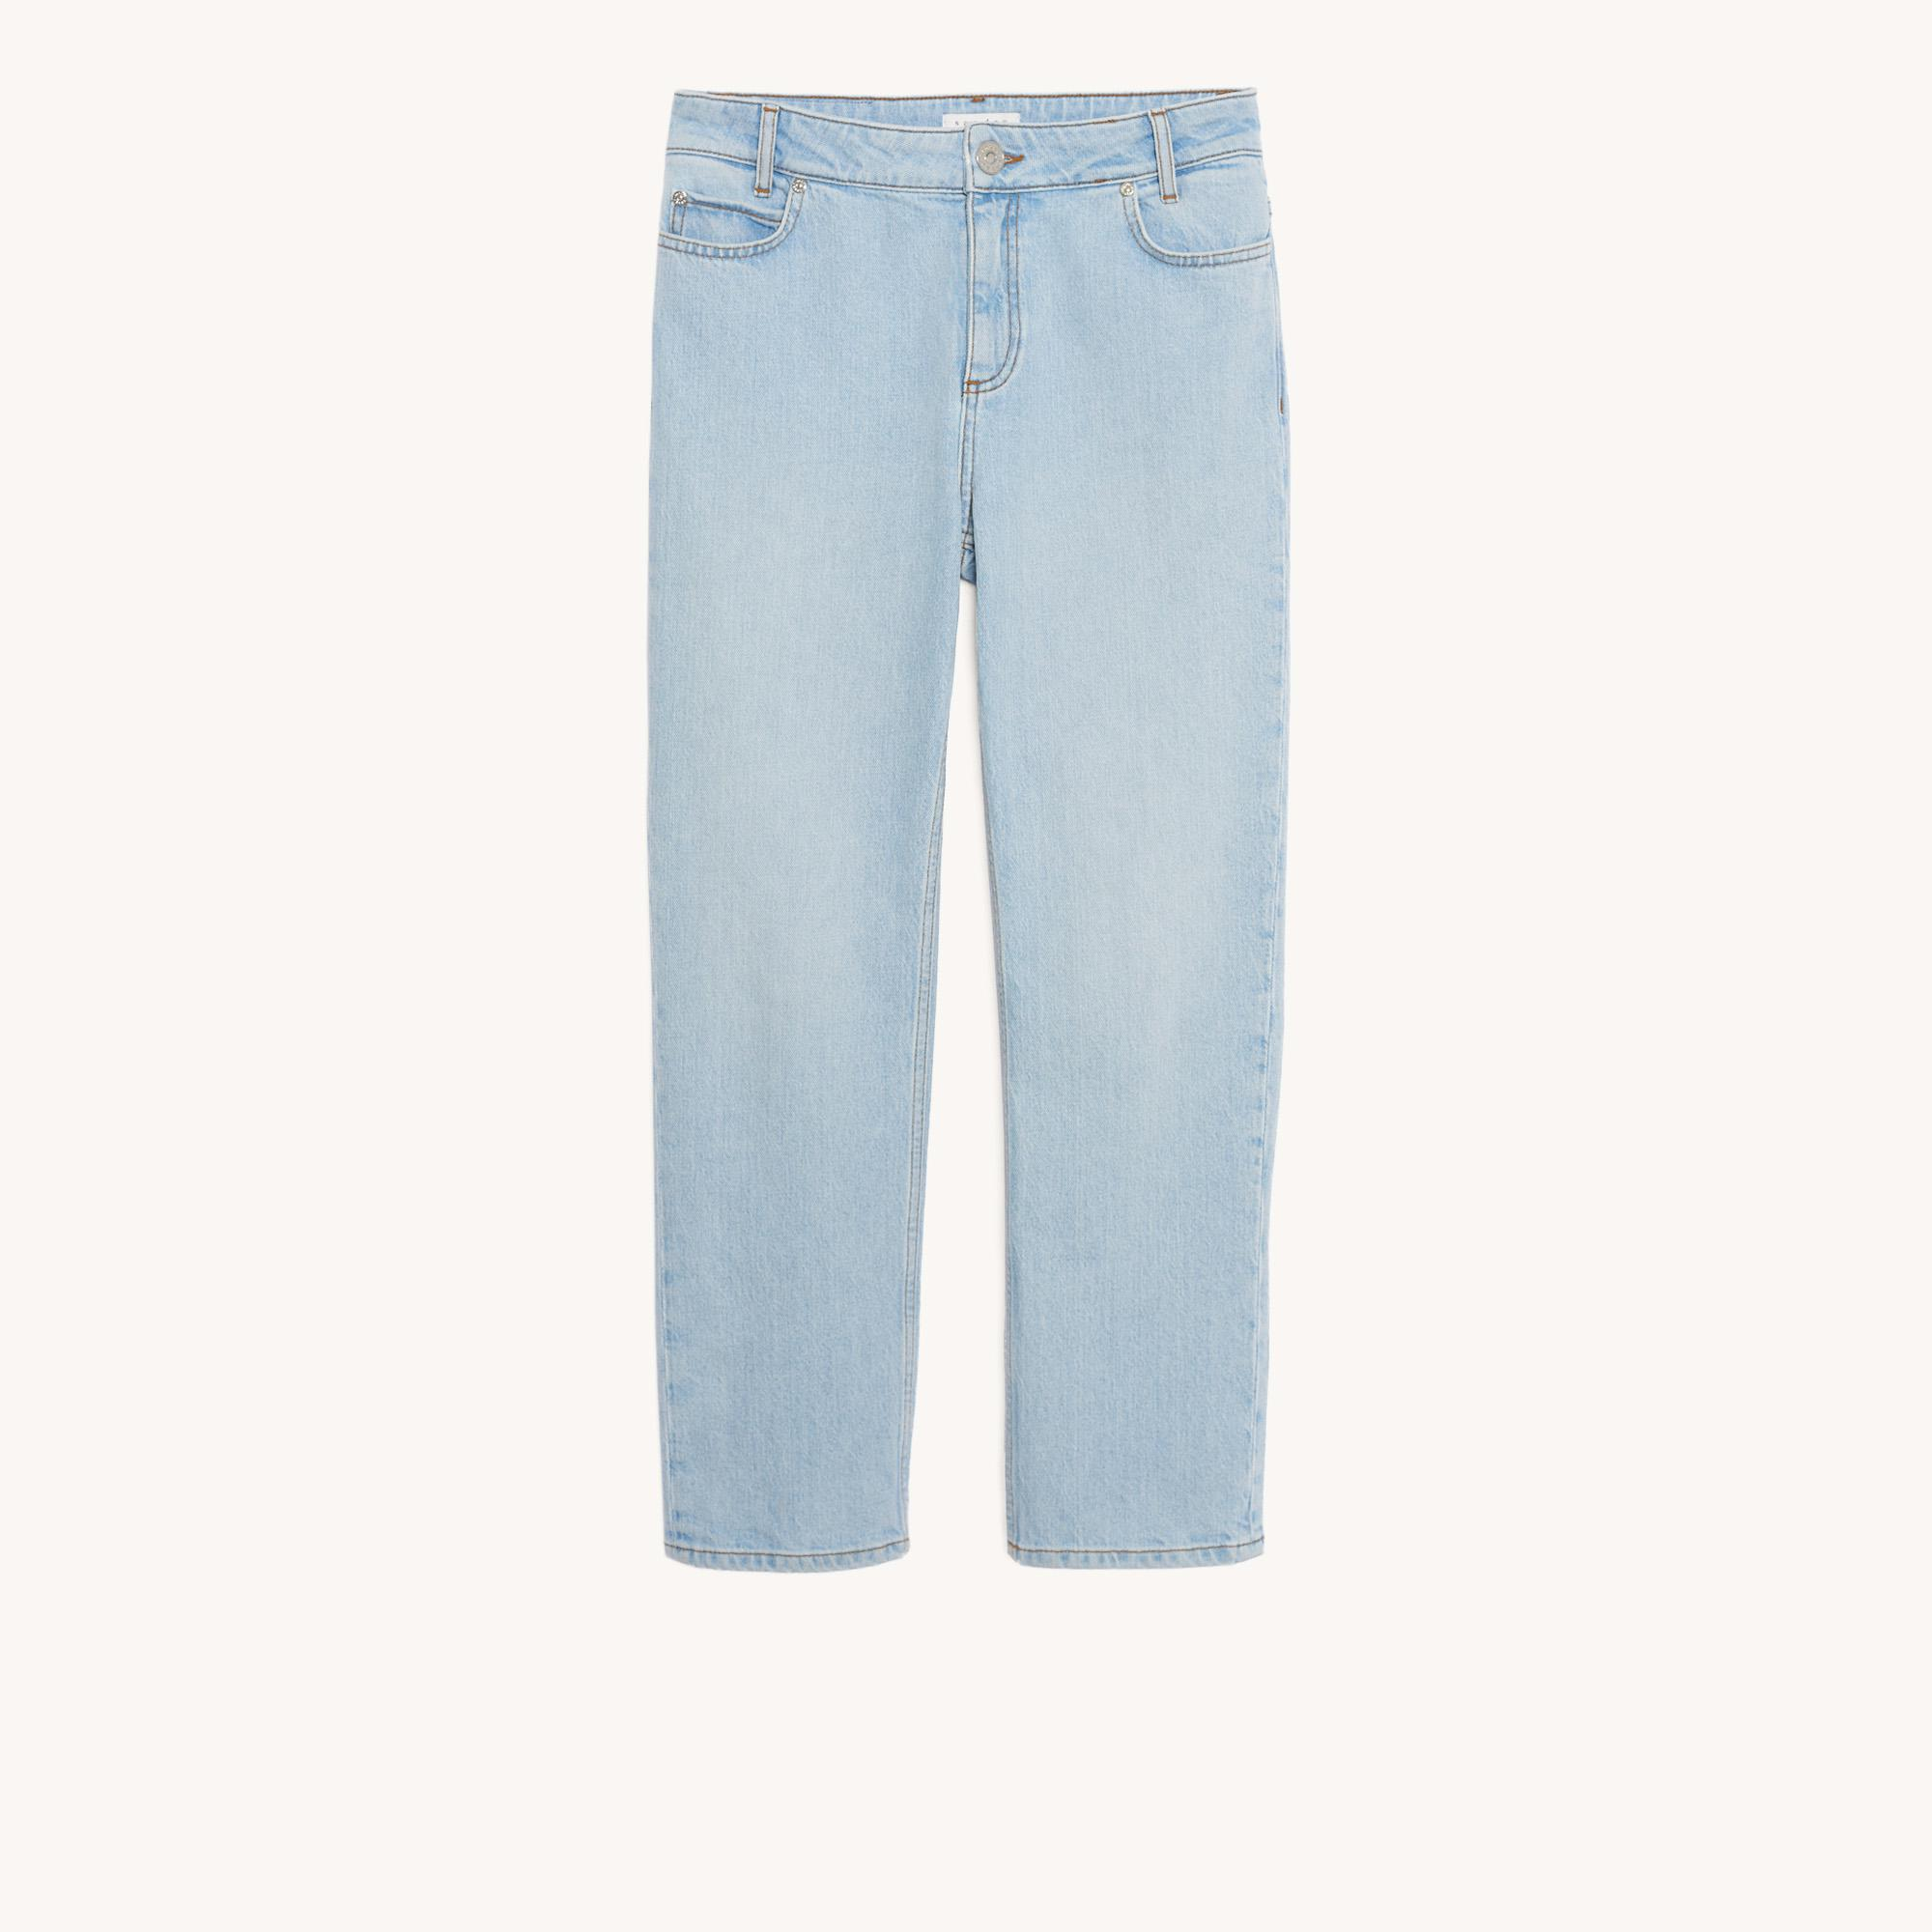 Stretch jeans with 5 pockets